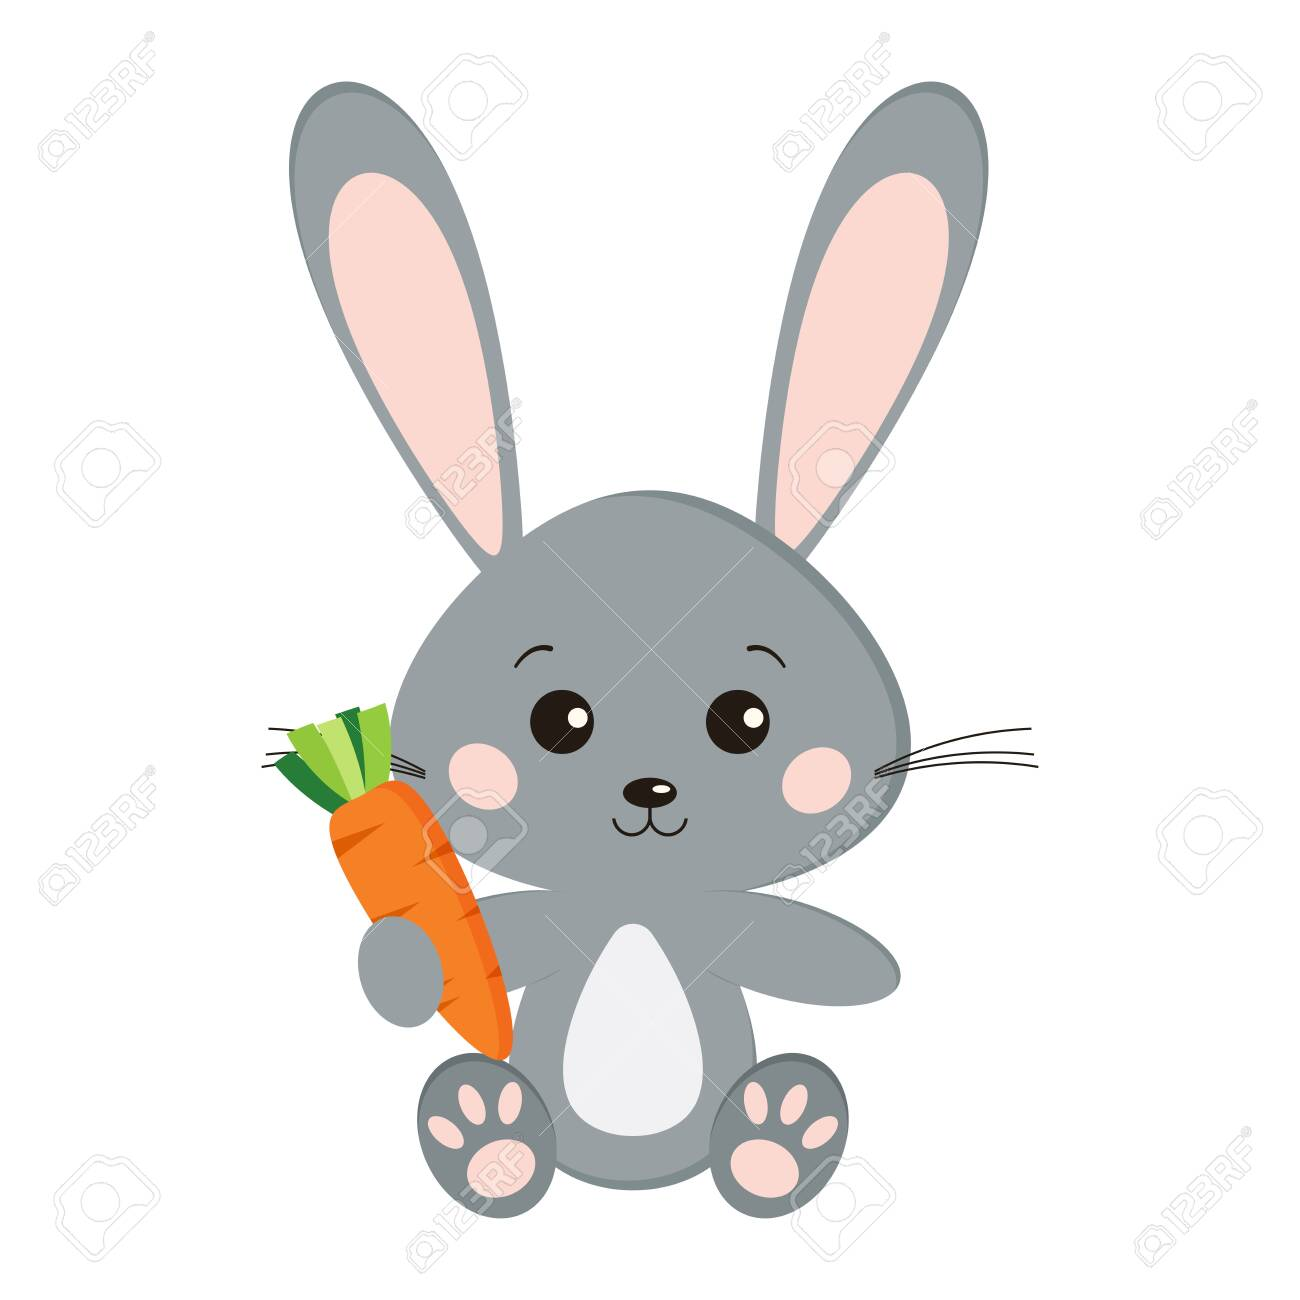 Image of sweet cute grey bunny rabbit in sitting pose with carrot in paw isolated on white background in cartoon style. Vector flat design characteres illustration. - 126428658